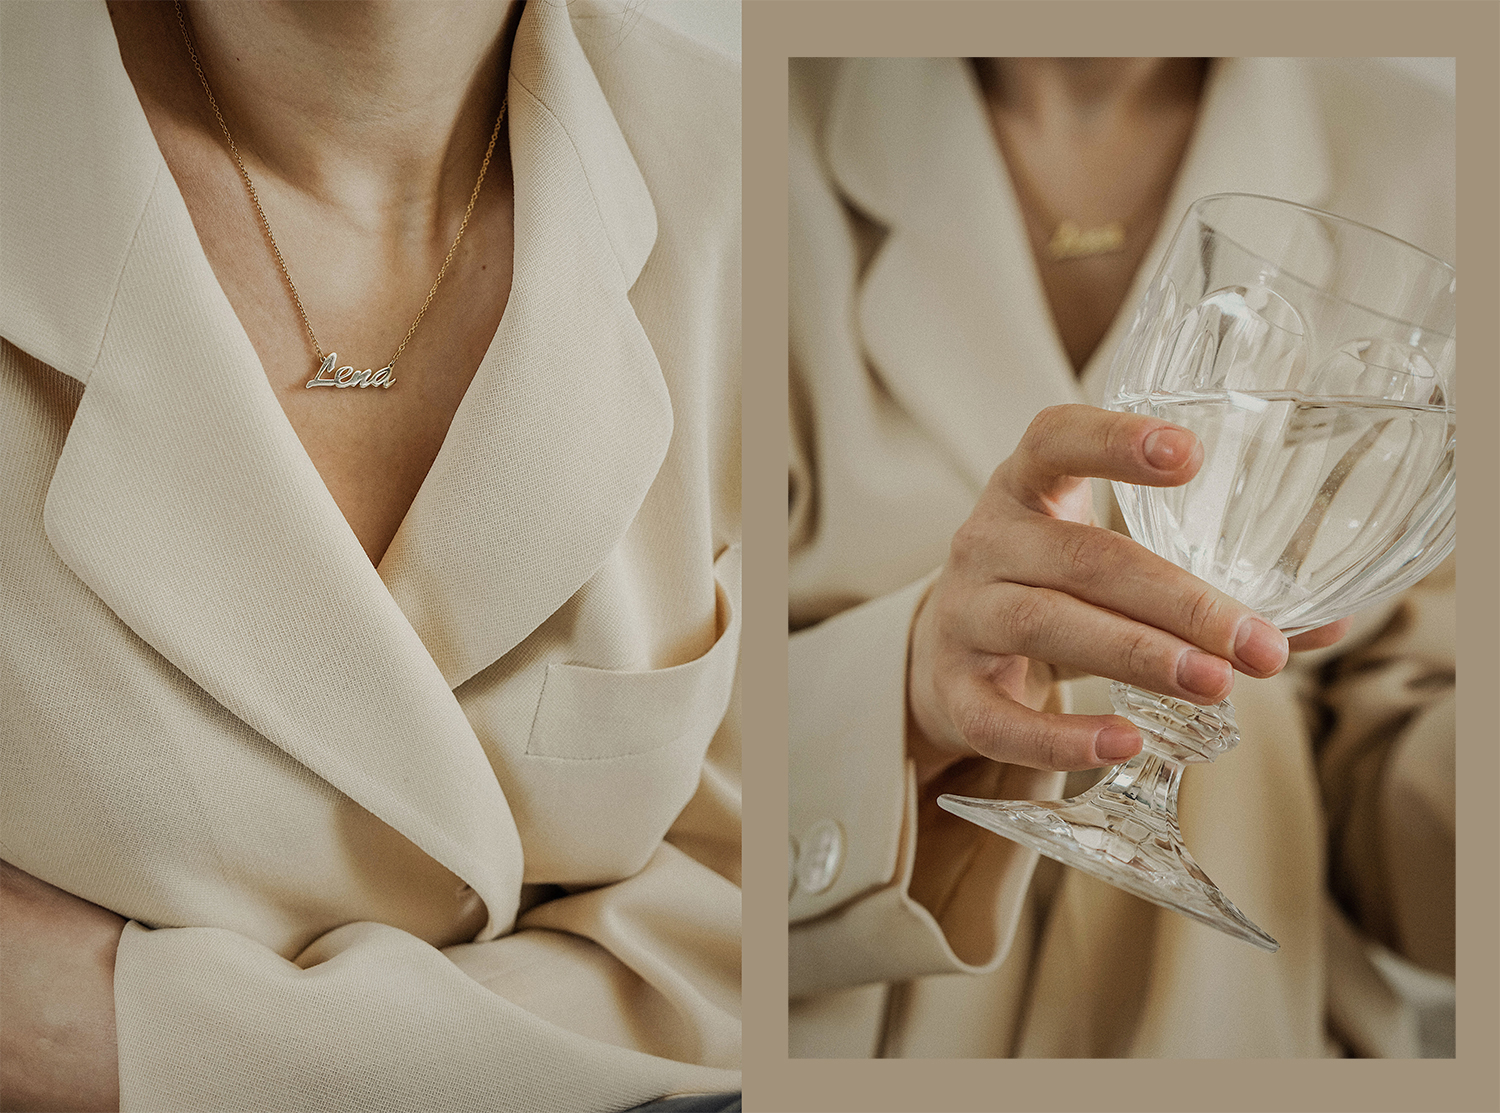 soufeel_name_necklace_nude_neutral_donna_karan_suit_fashion_style_lenajuice_thewhiteocean_03